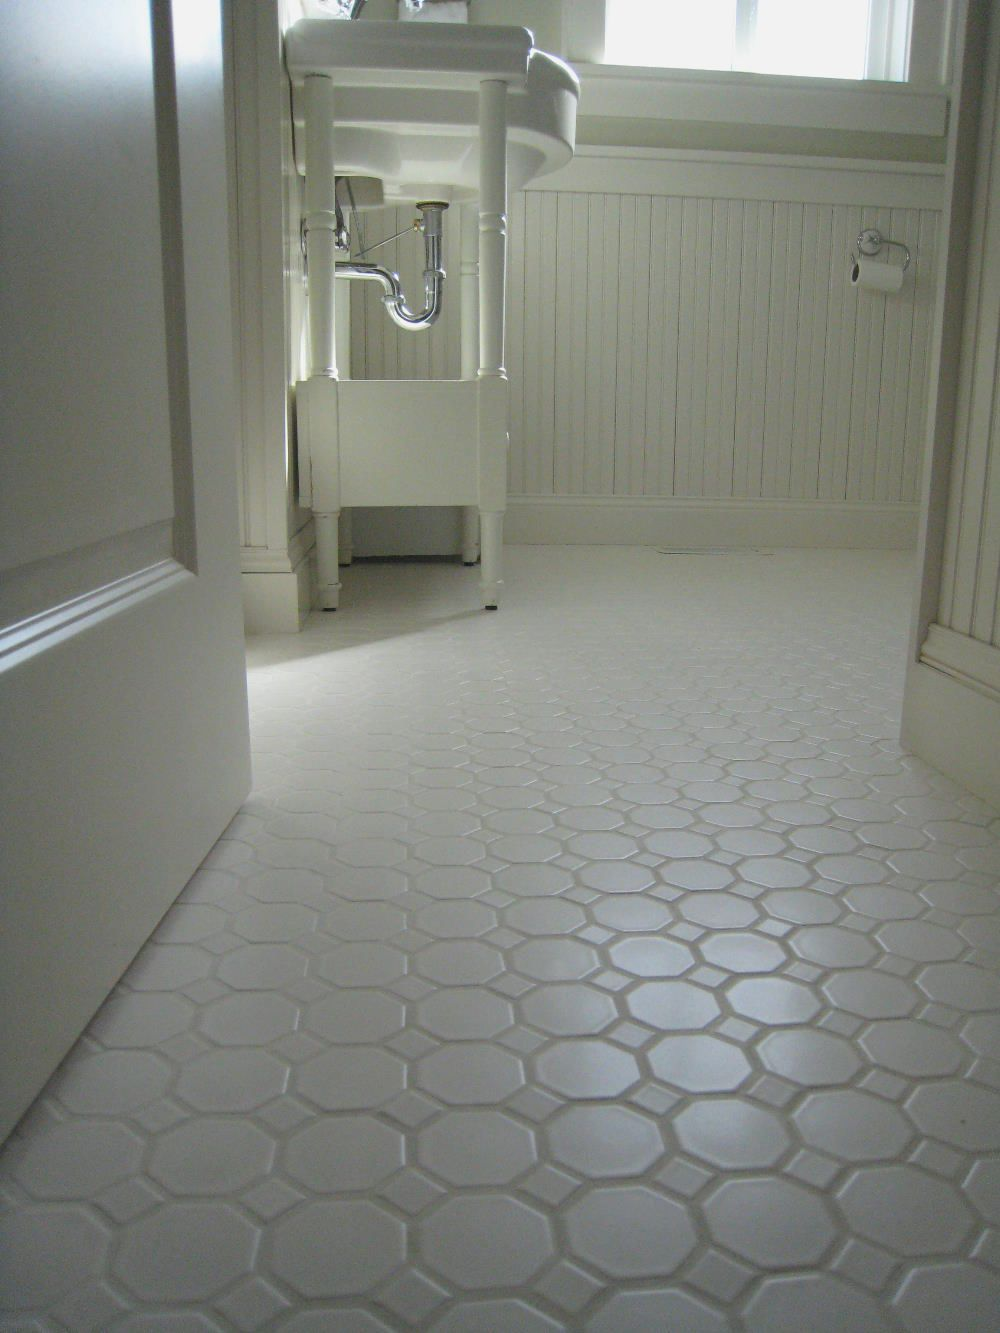 Non slip bathroom floor tiles more picture non slip for Tile linoleum bathroom